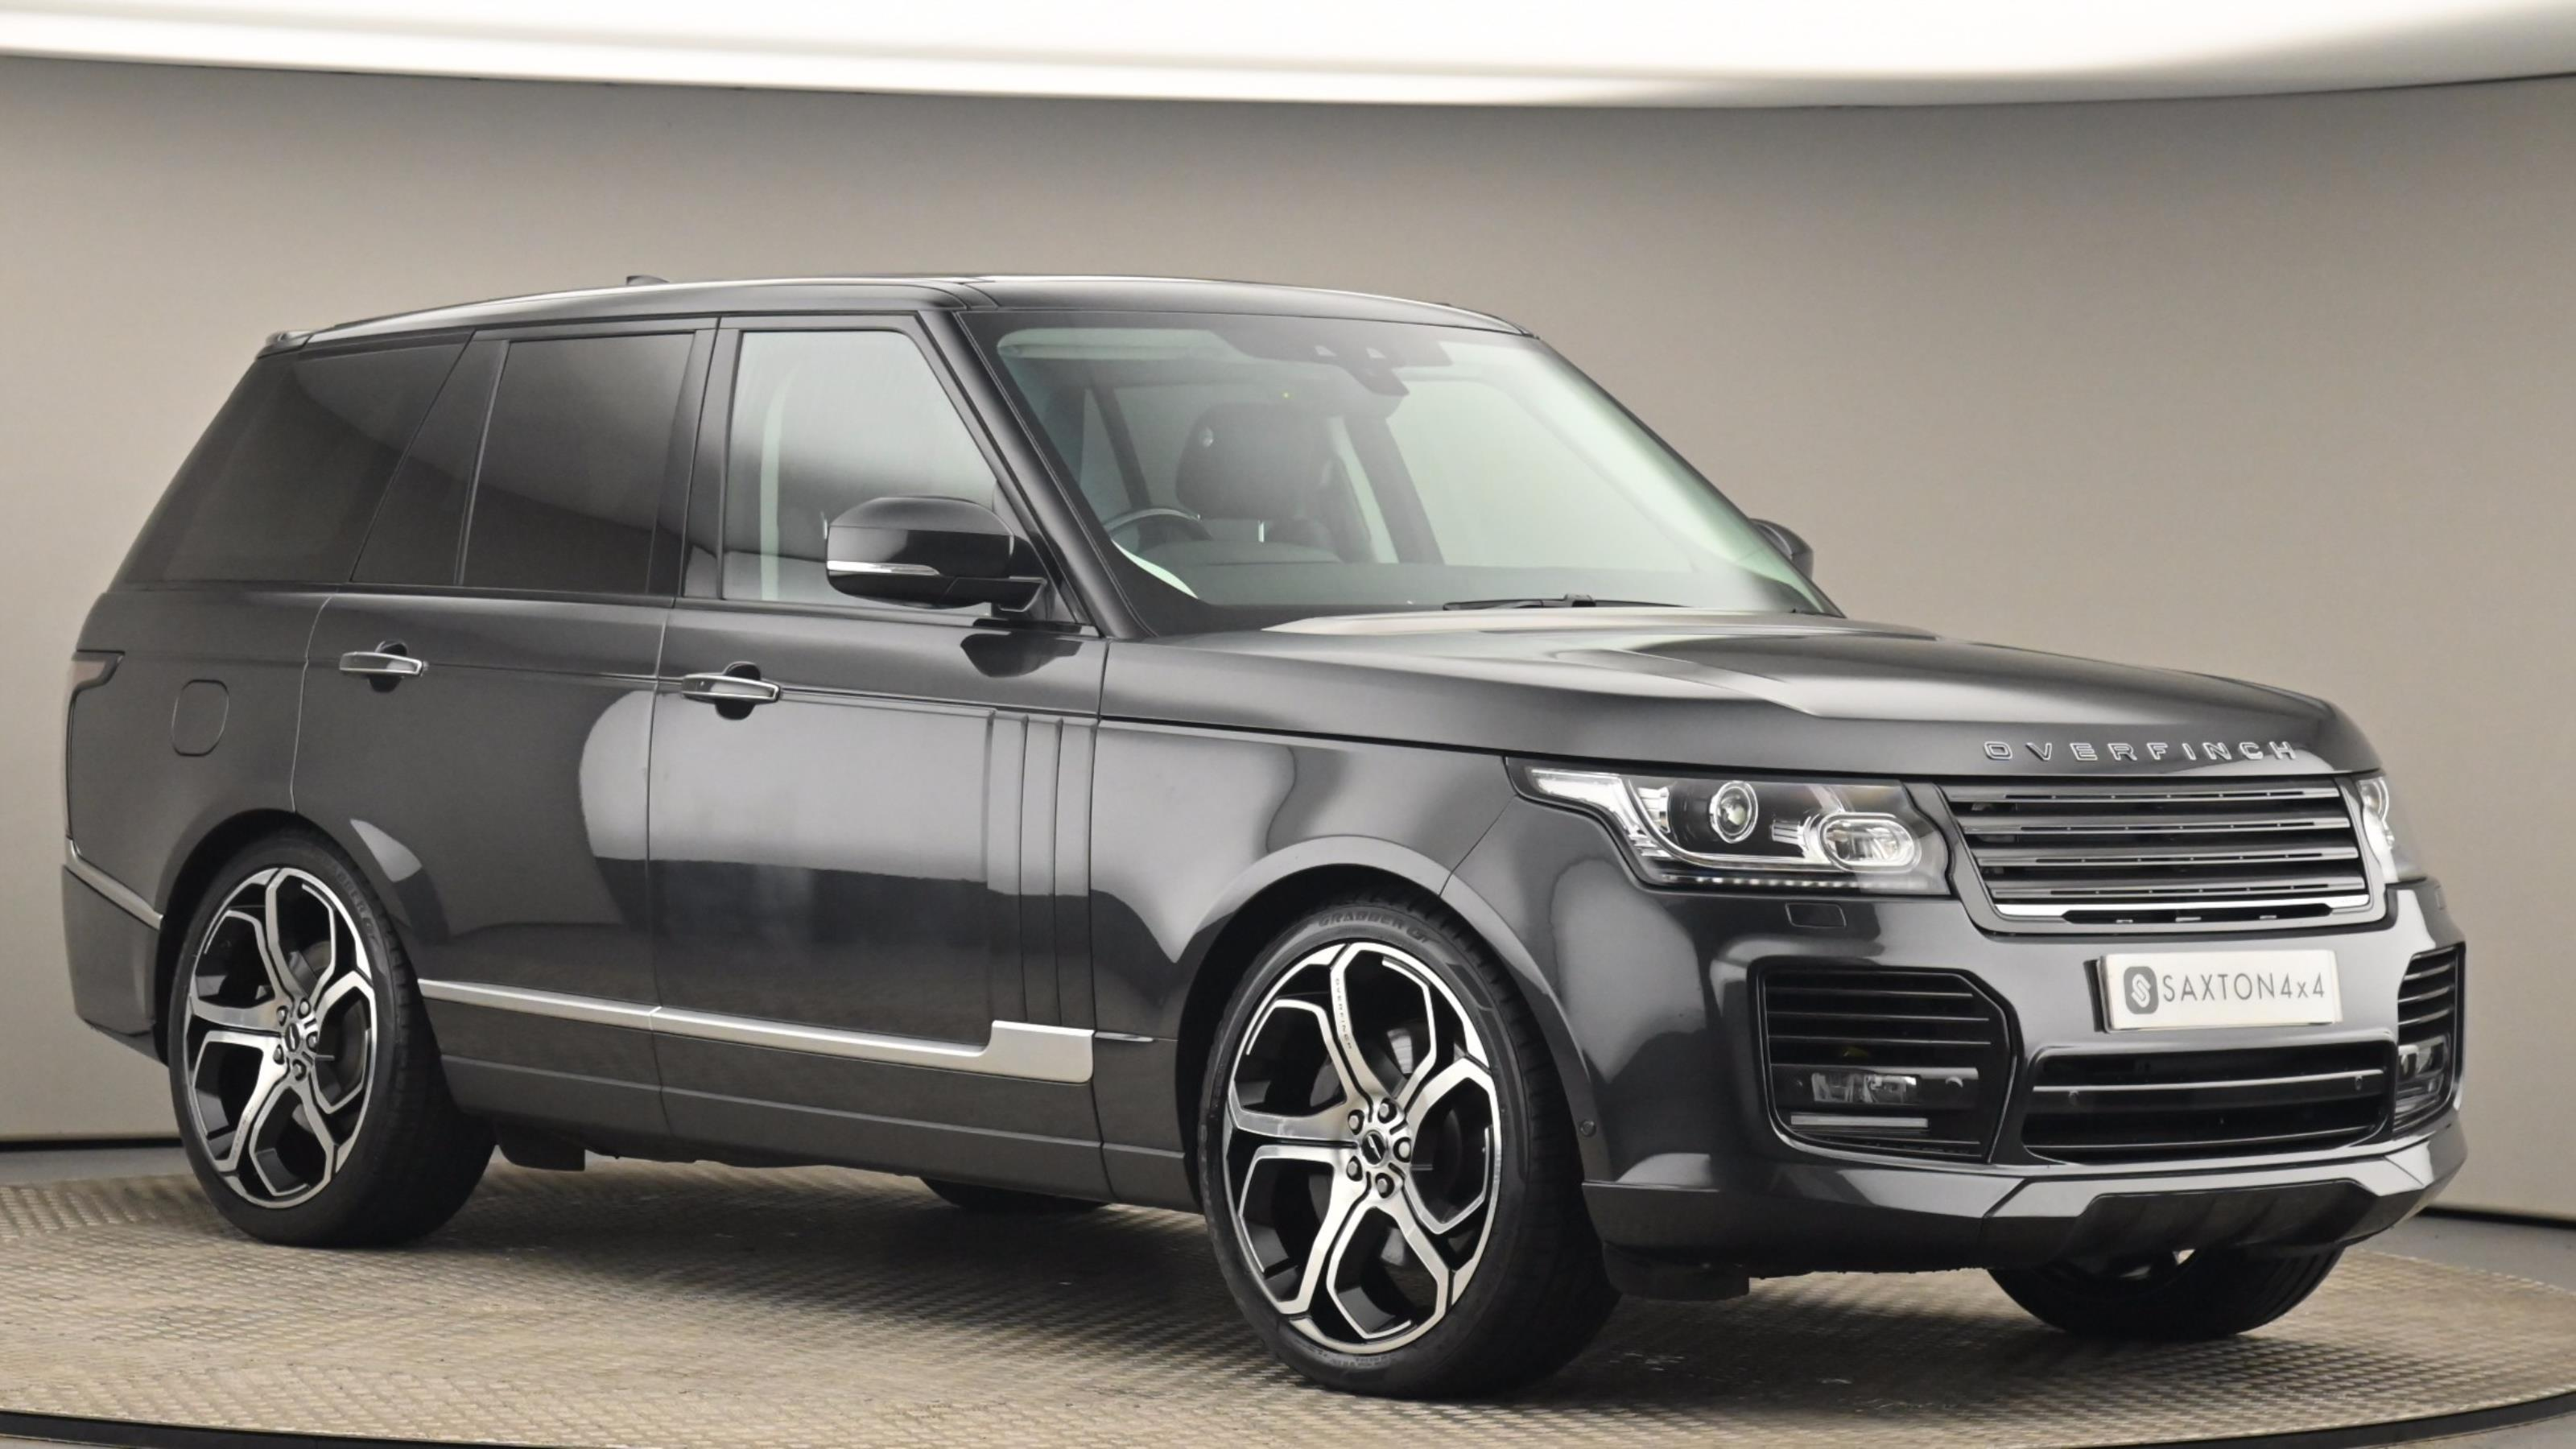 Used 2017 Land Rover RANGE ROVER 4.4 SDV8 Vogue SE 4dr Auto Grey at Saxton4x4